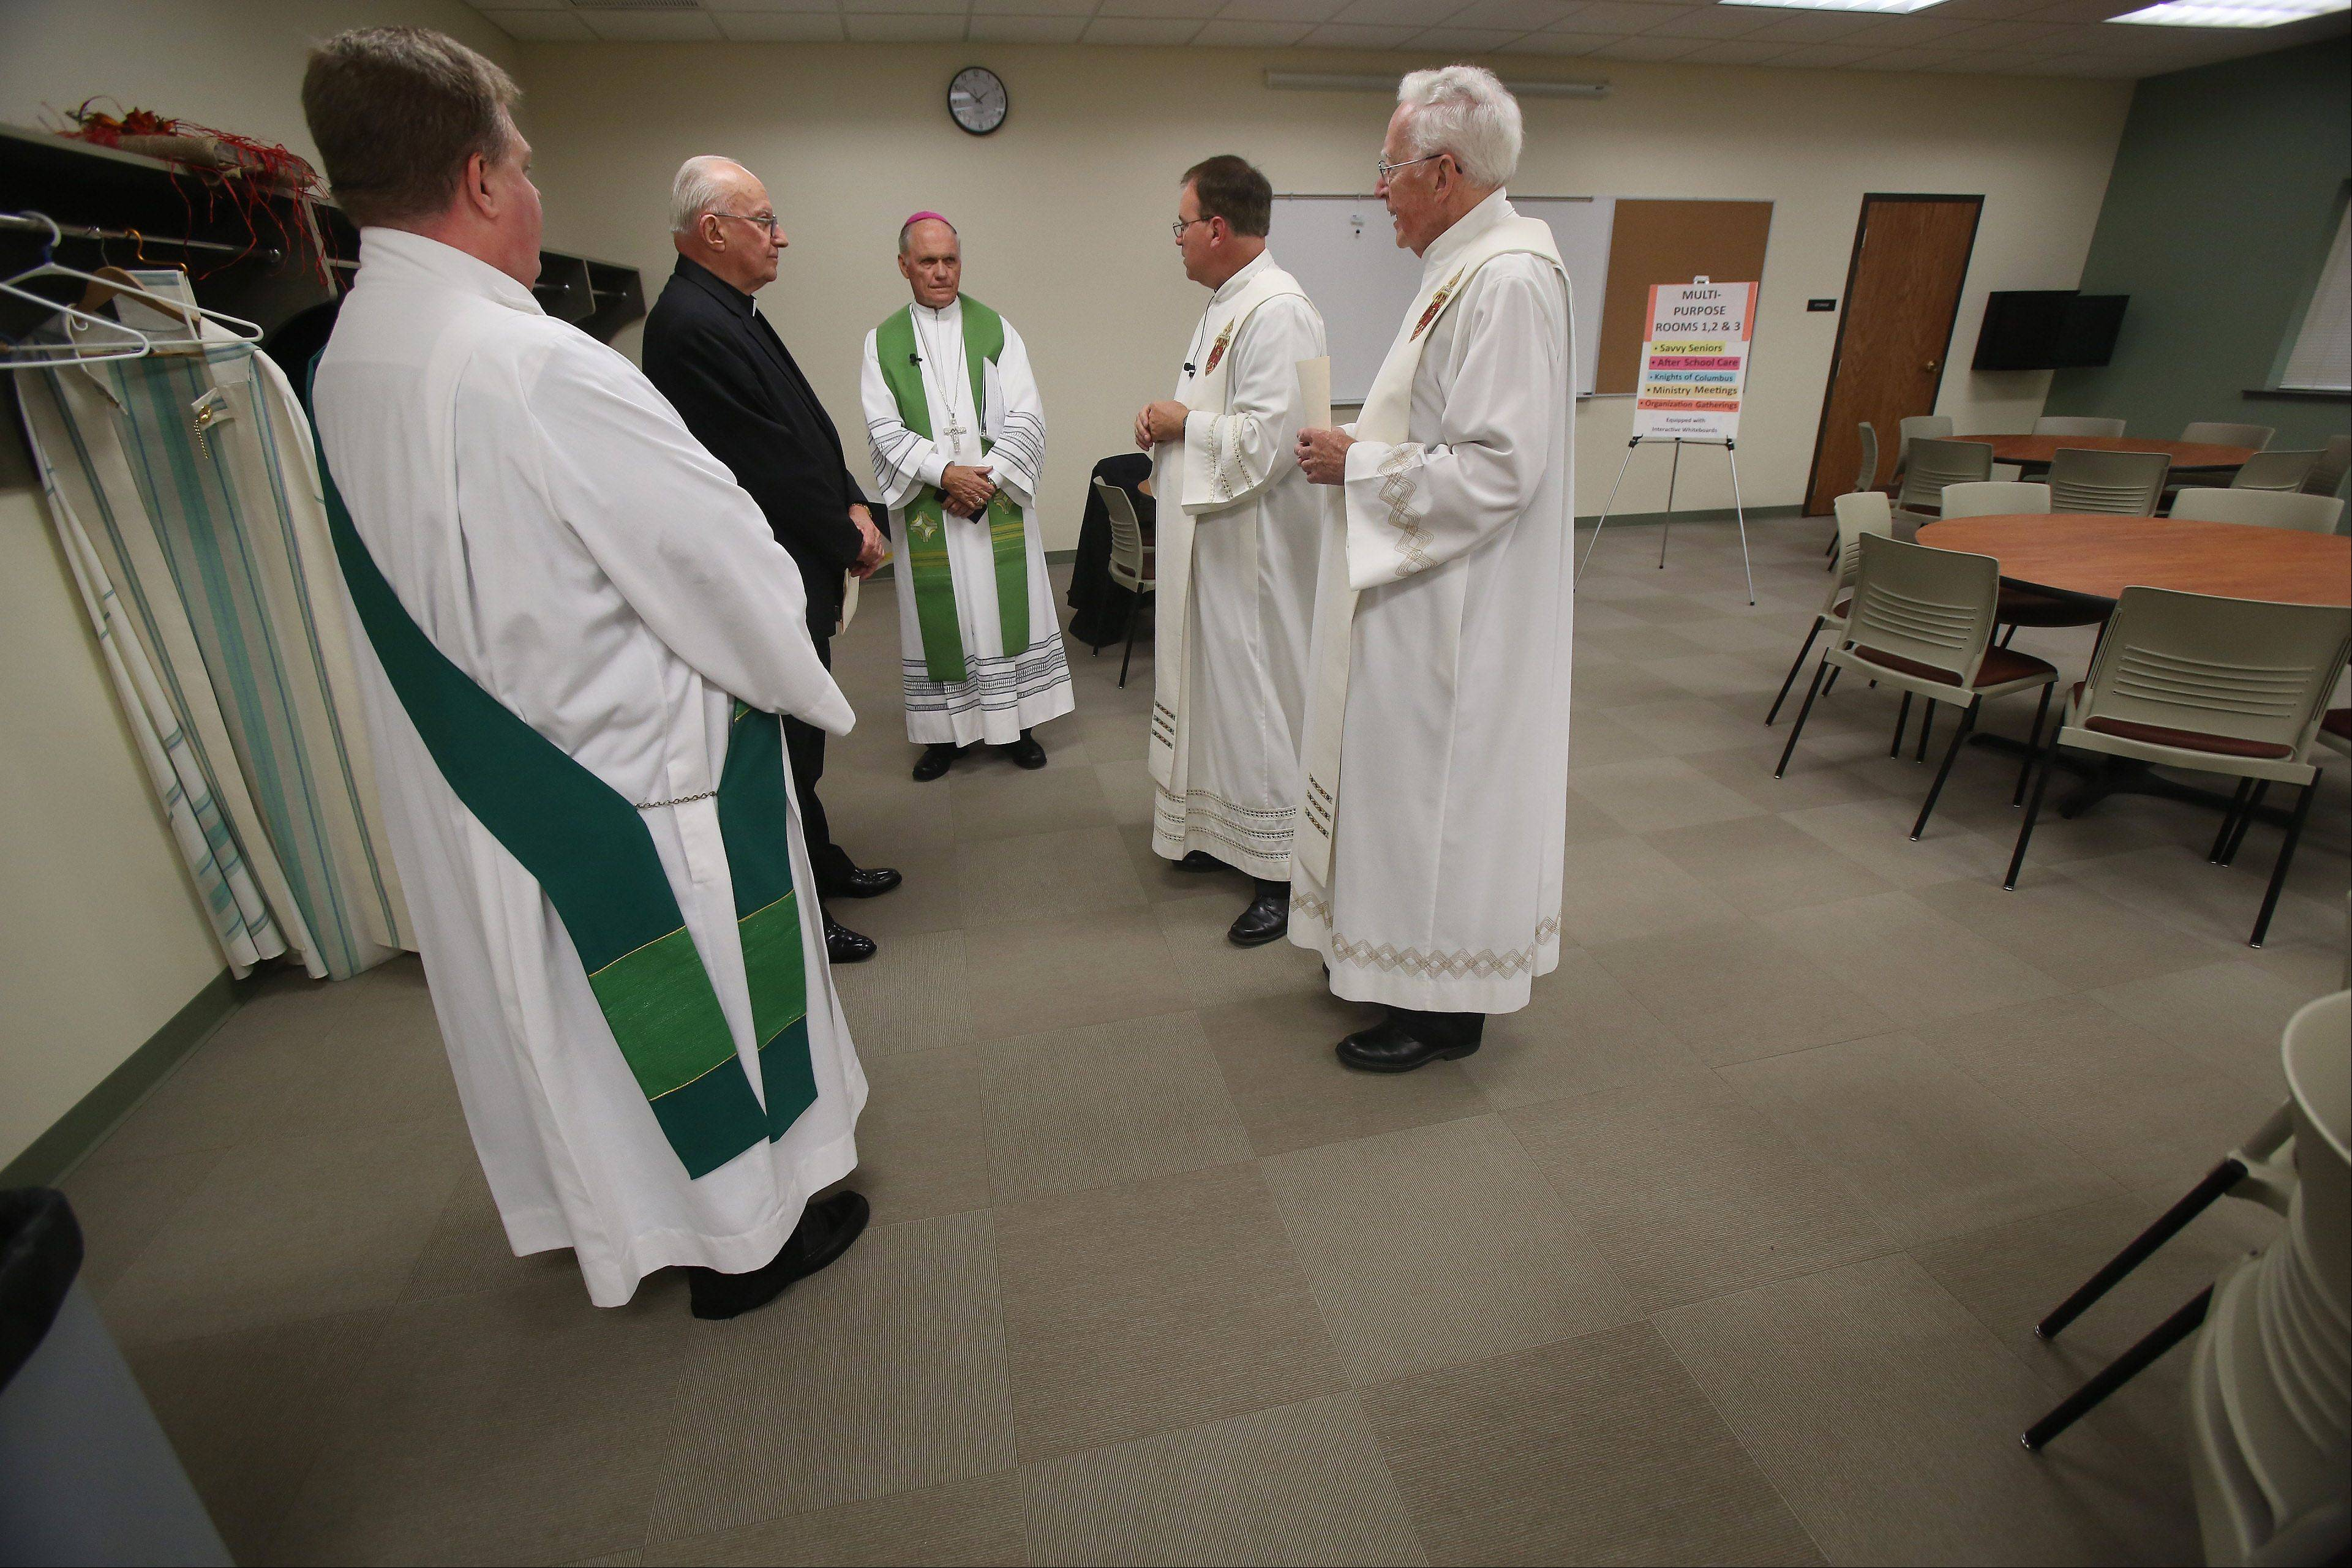 Priests and bishops, including Bishop George Rassas, center, gather in one of the new multipurpose rooms before the dedication ceremony Sunday at Prince of Peace Catholic Church in Lake Villa. The church built a new, $5.3 million, 42,00-square-foot Parish Life Center, that includes a new gym, classrooms, a library, fine arts room, computer classrooms and meeting rooms.